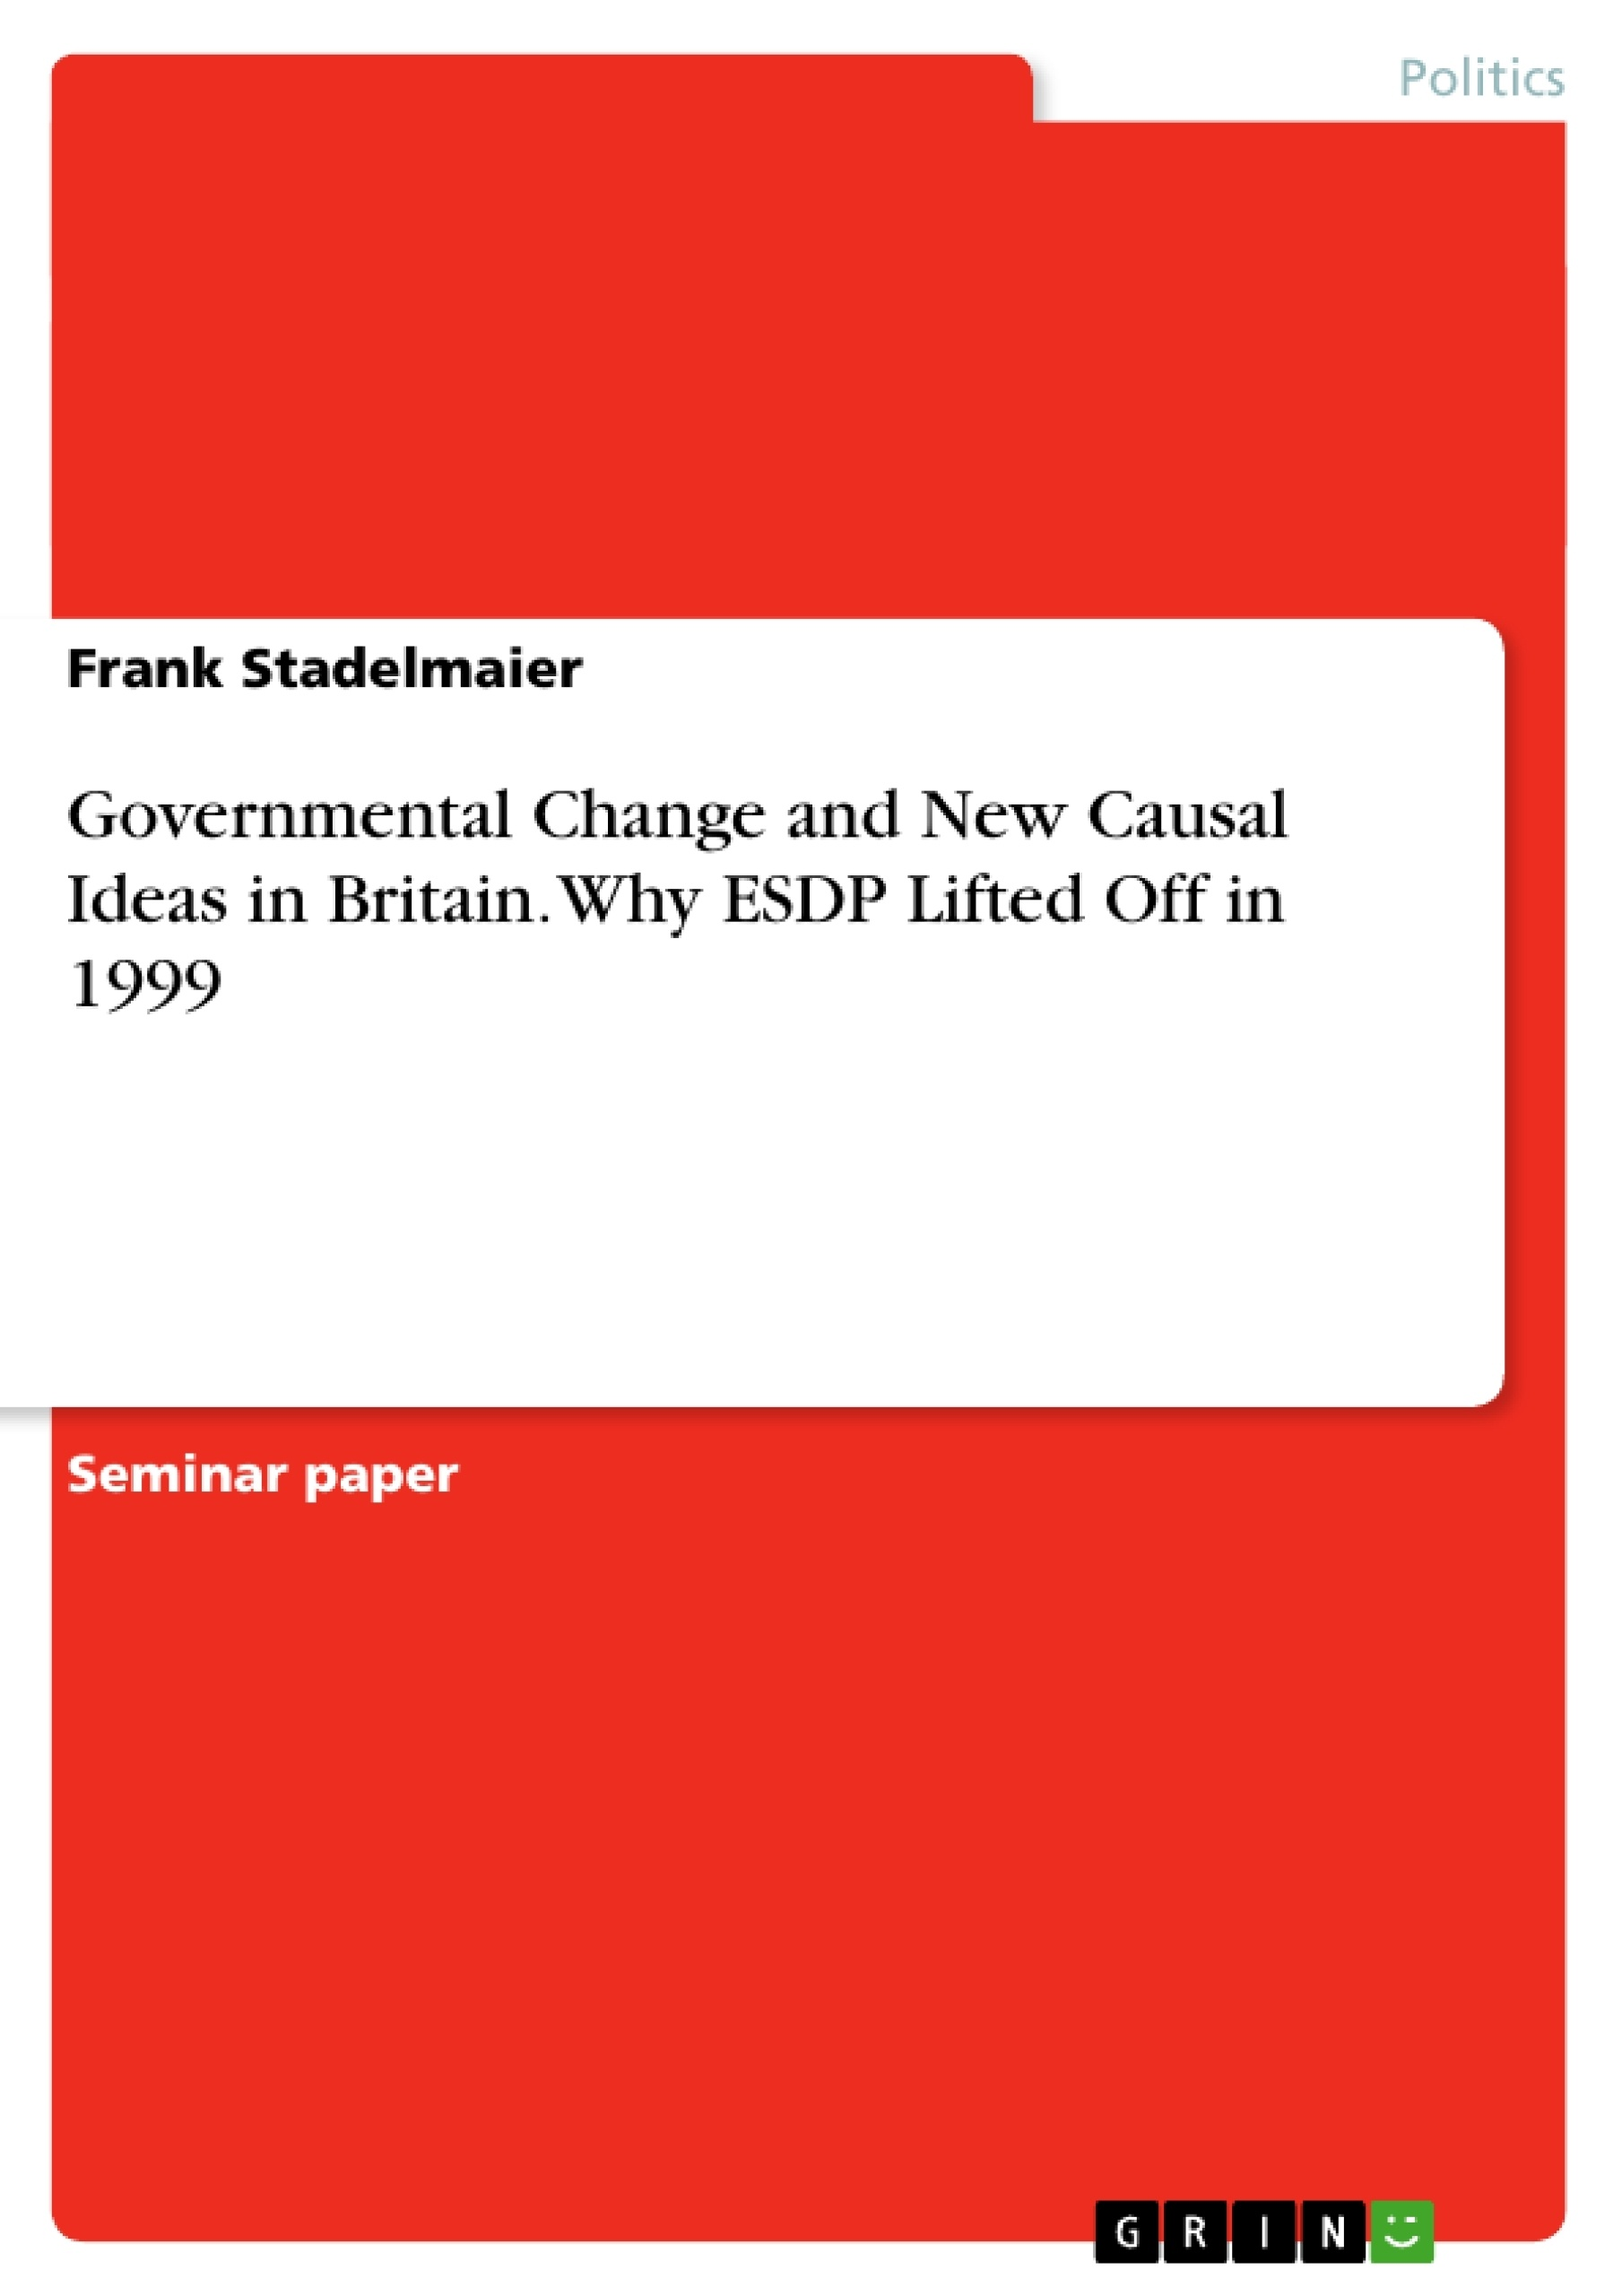 Title: Governmental Change and New Causal Ideas in Britain. Why ESDP Lifted Off in 1999